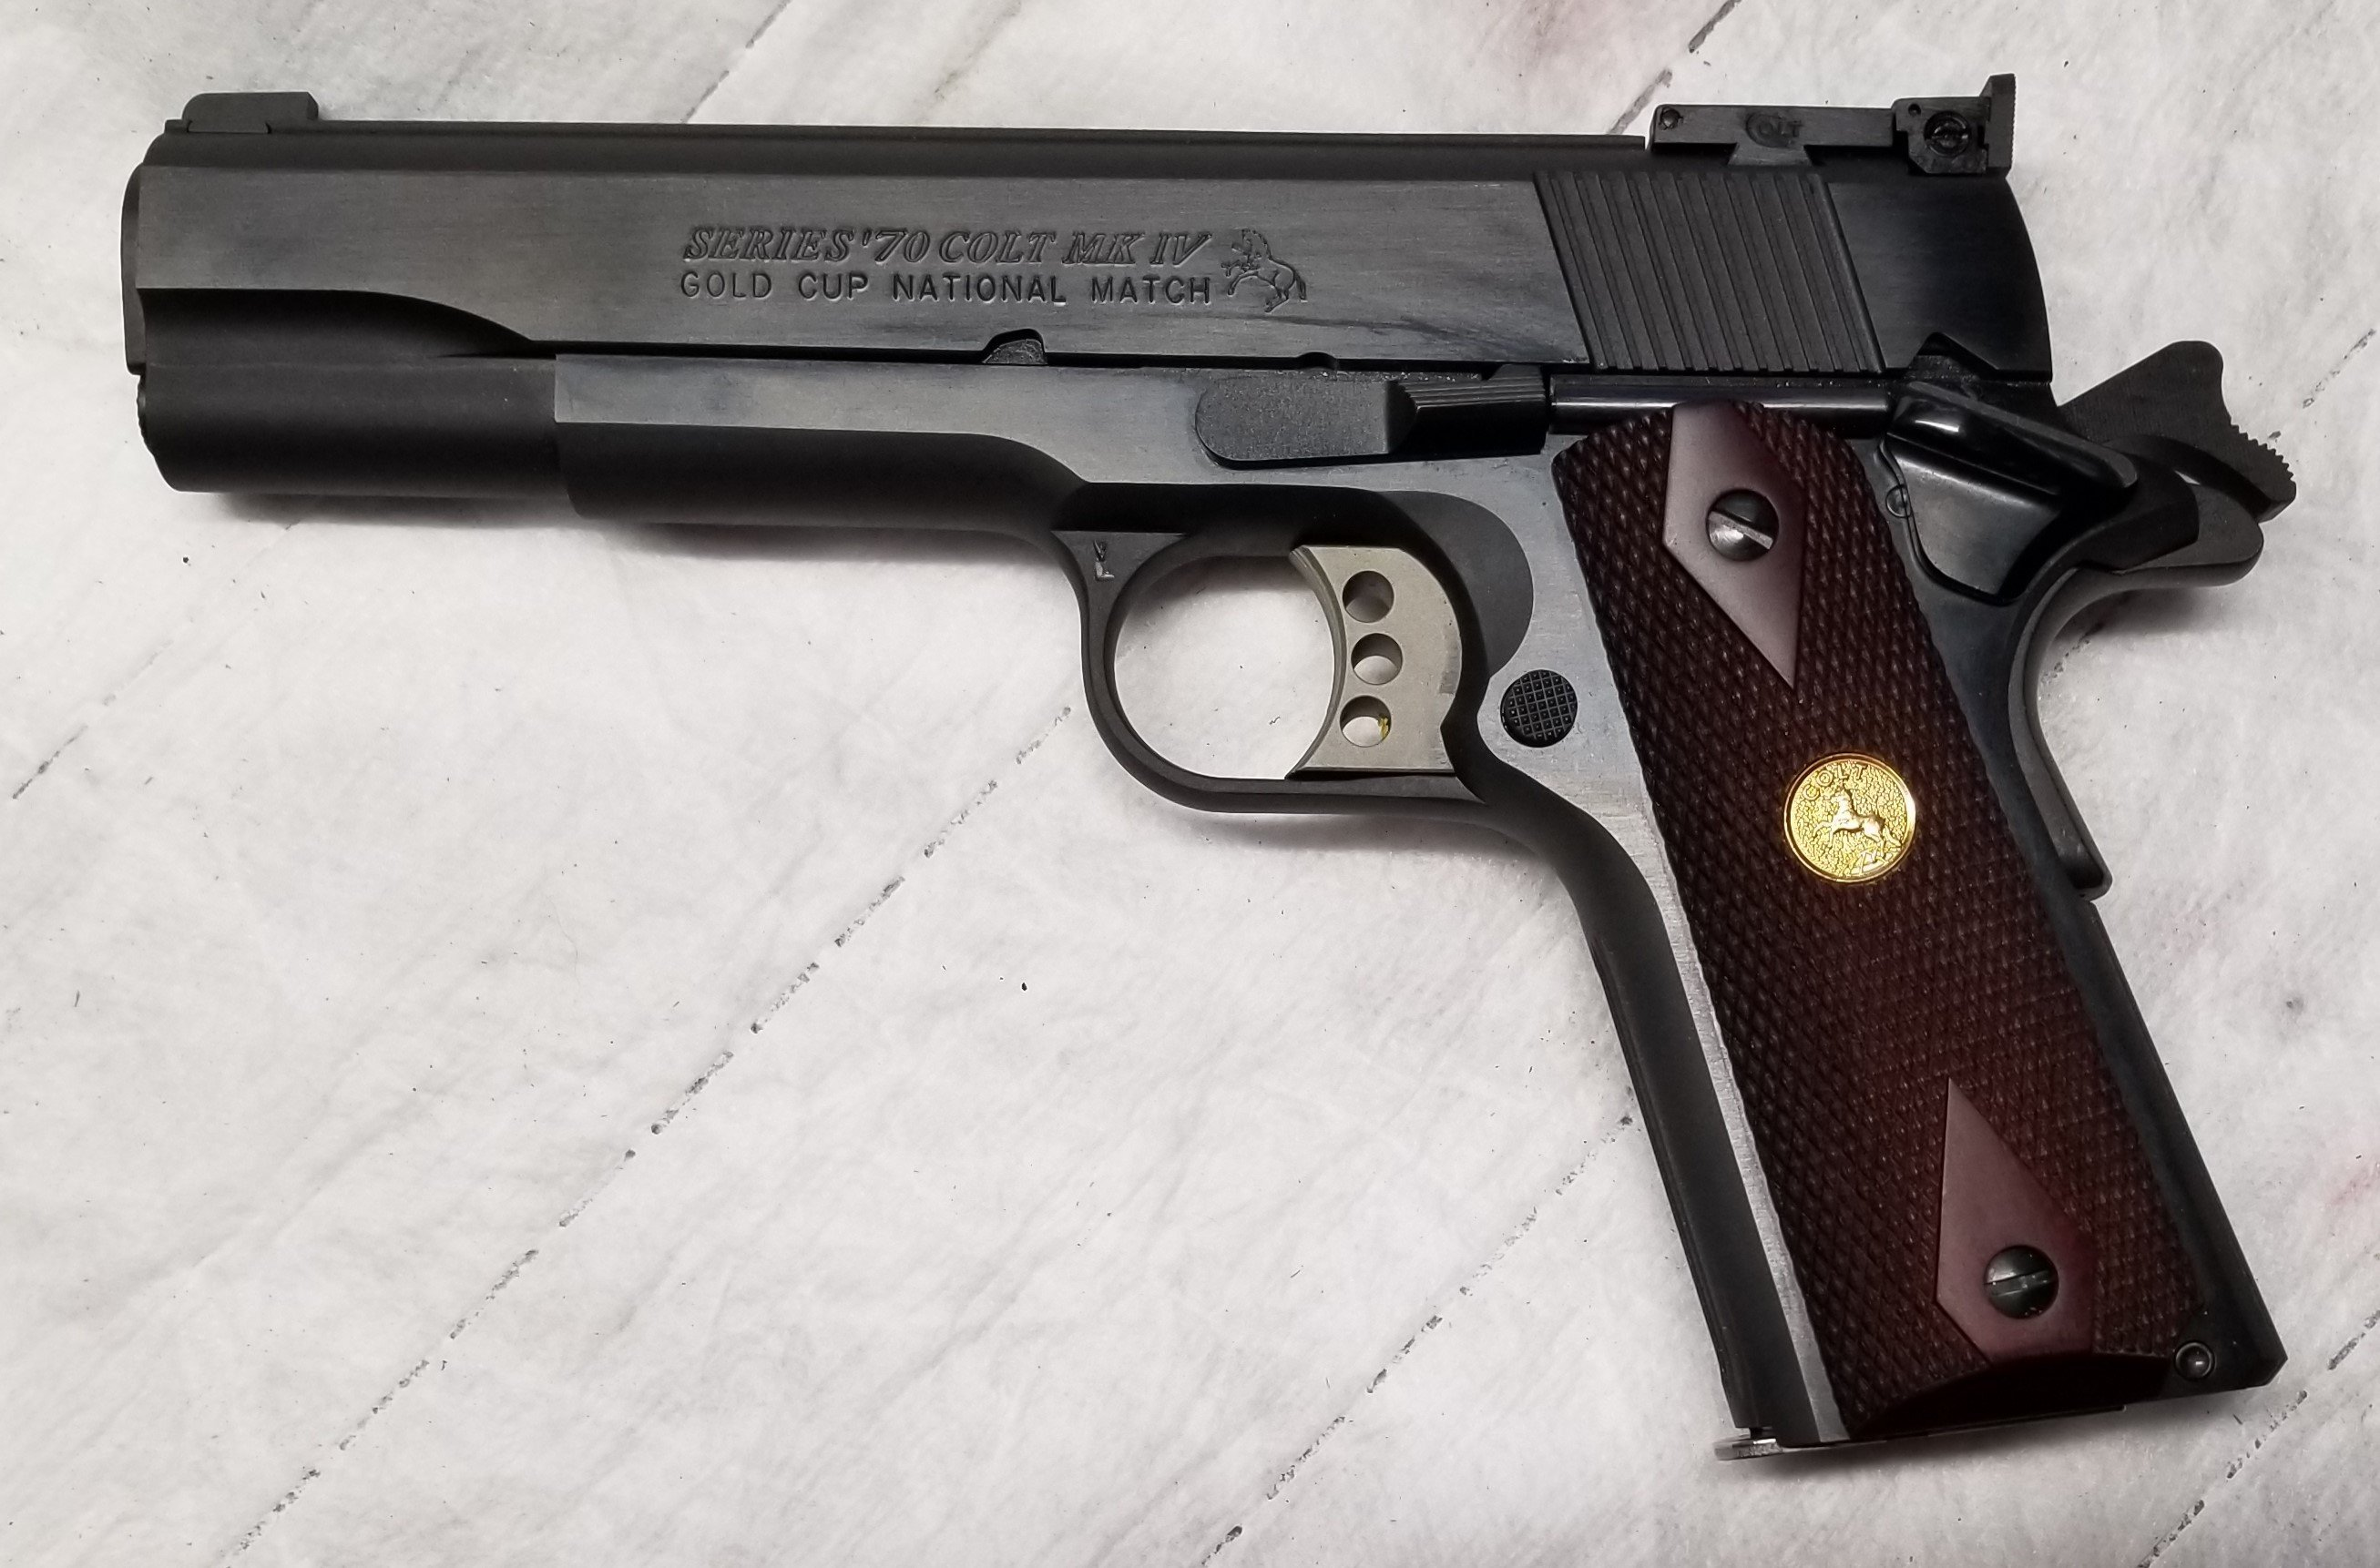 1911 Colt Gold Cup National Match 9mm.jpg